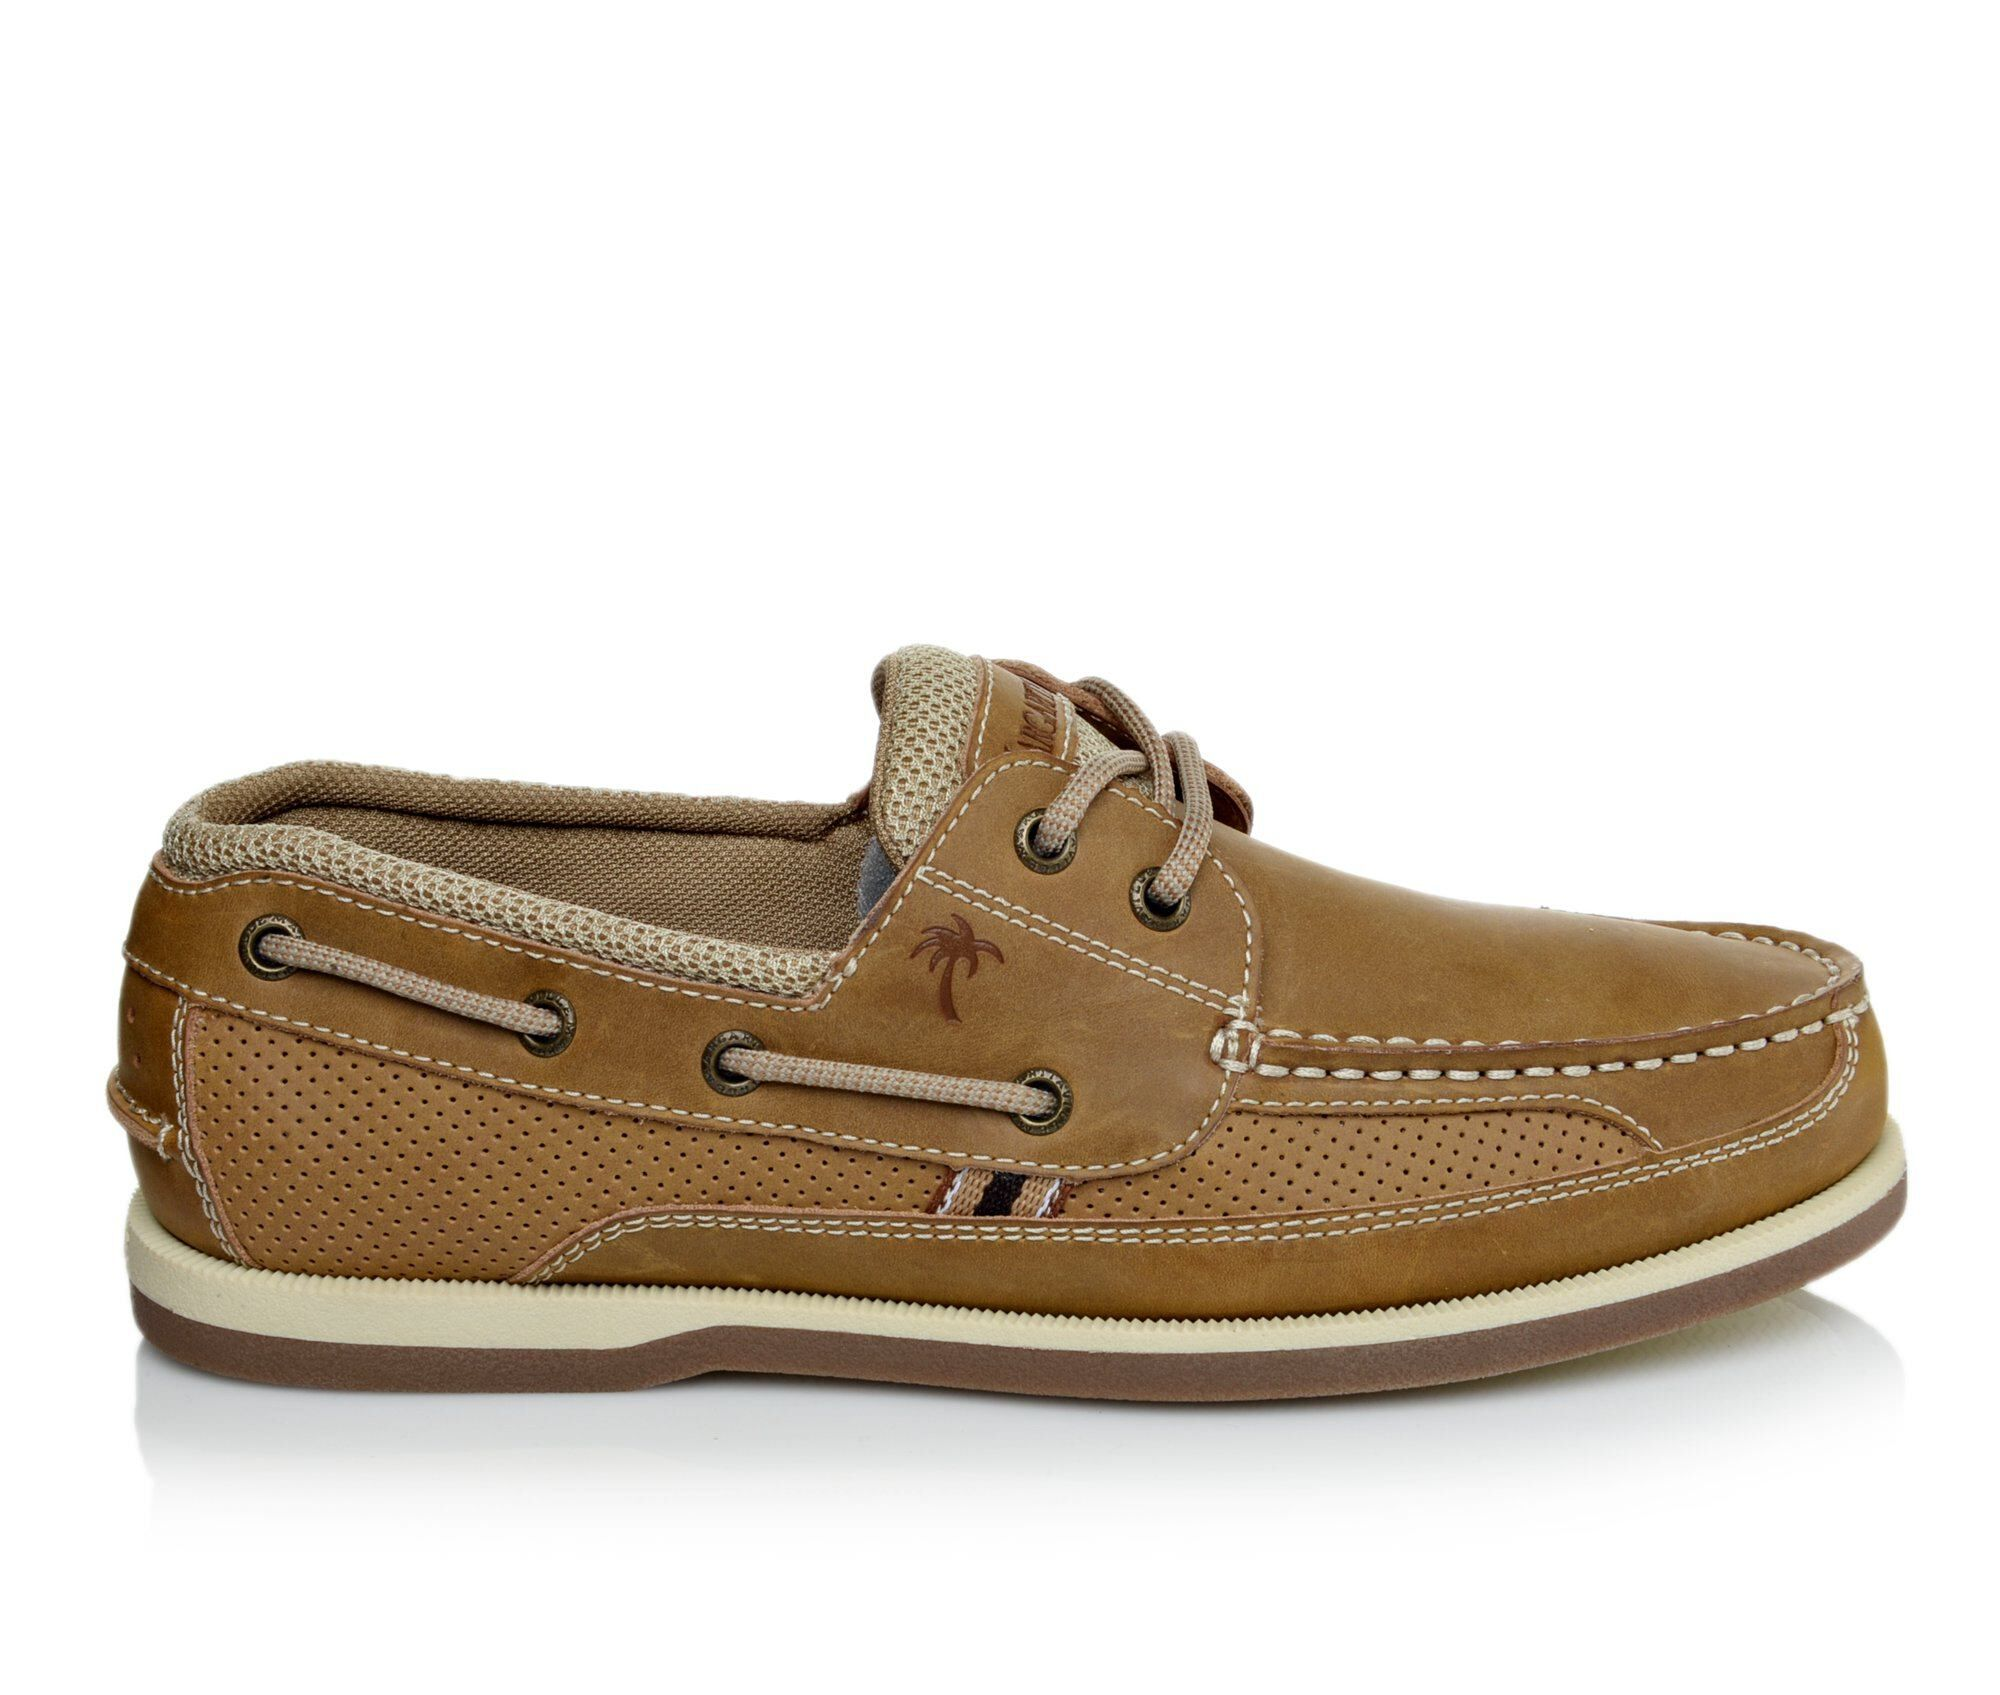 Men's Margaritaville Lighthouse Boat Shoes new arrival cheap price sale outlet store browse cheap online lDQSY